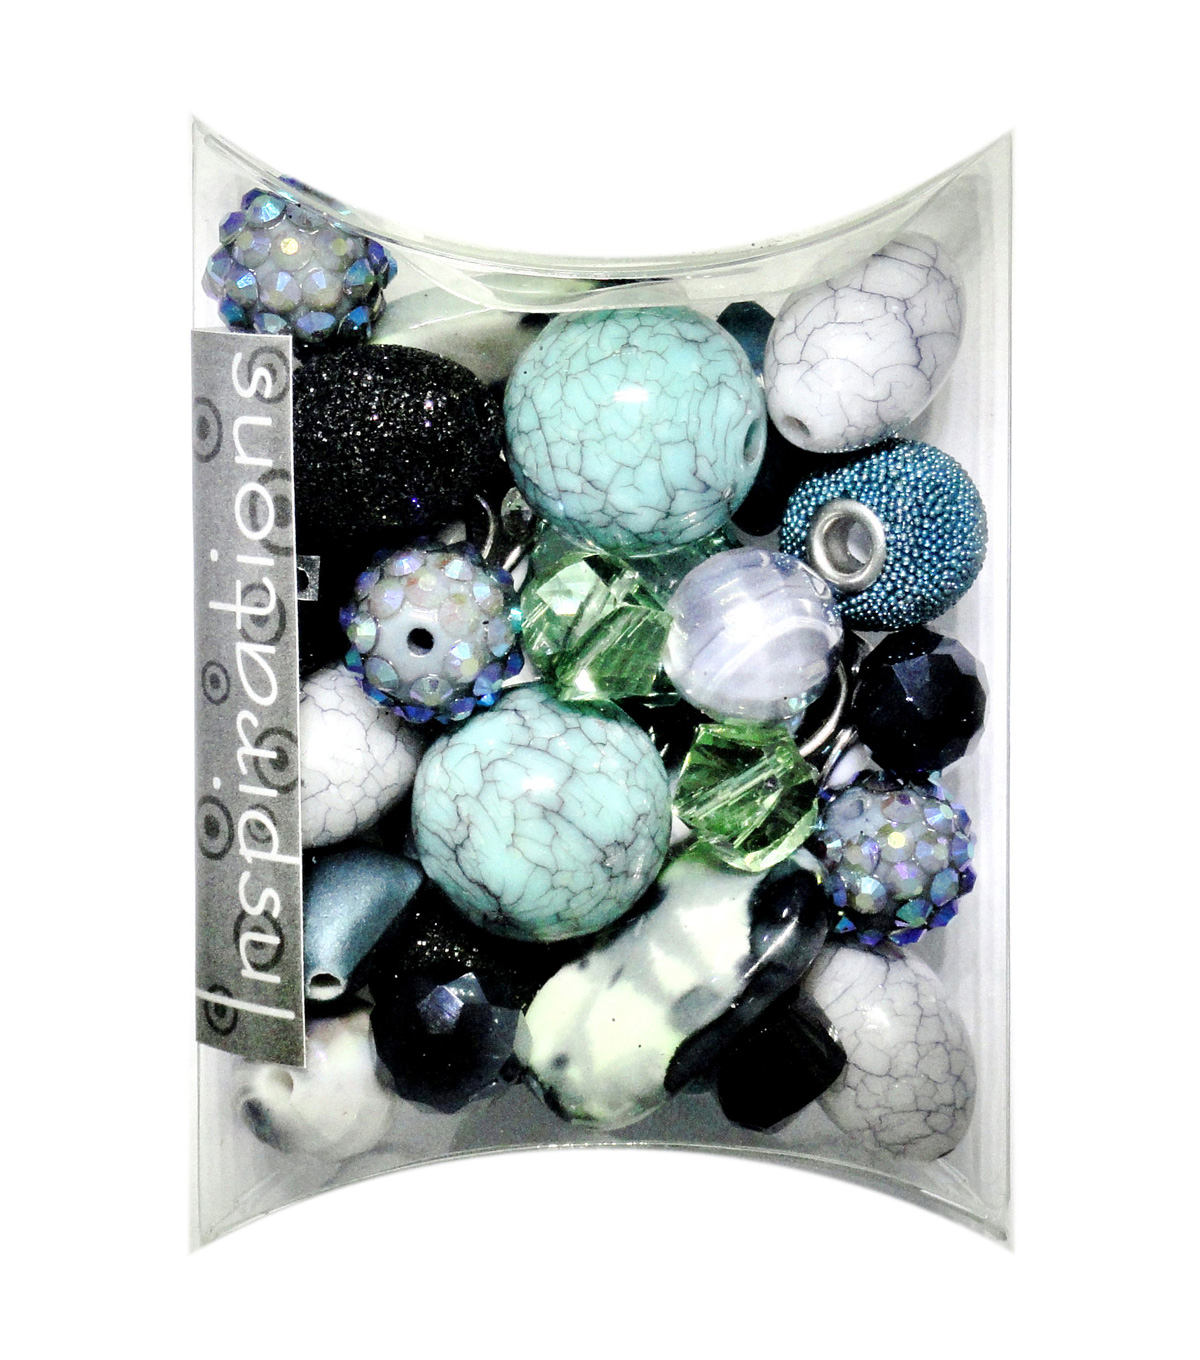 Jesse James Inspirations Beads 1.76 oz-Tapestry